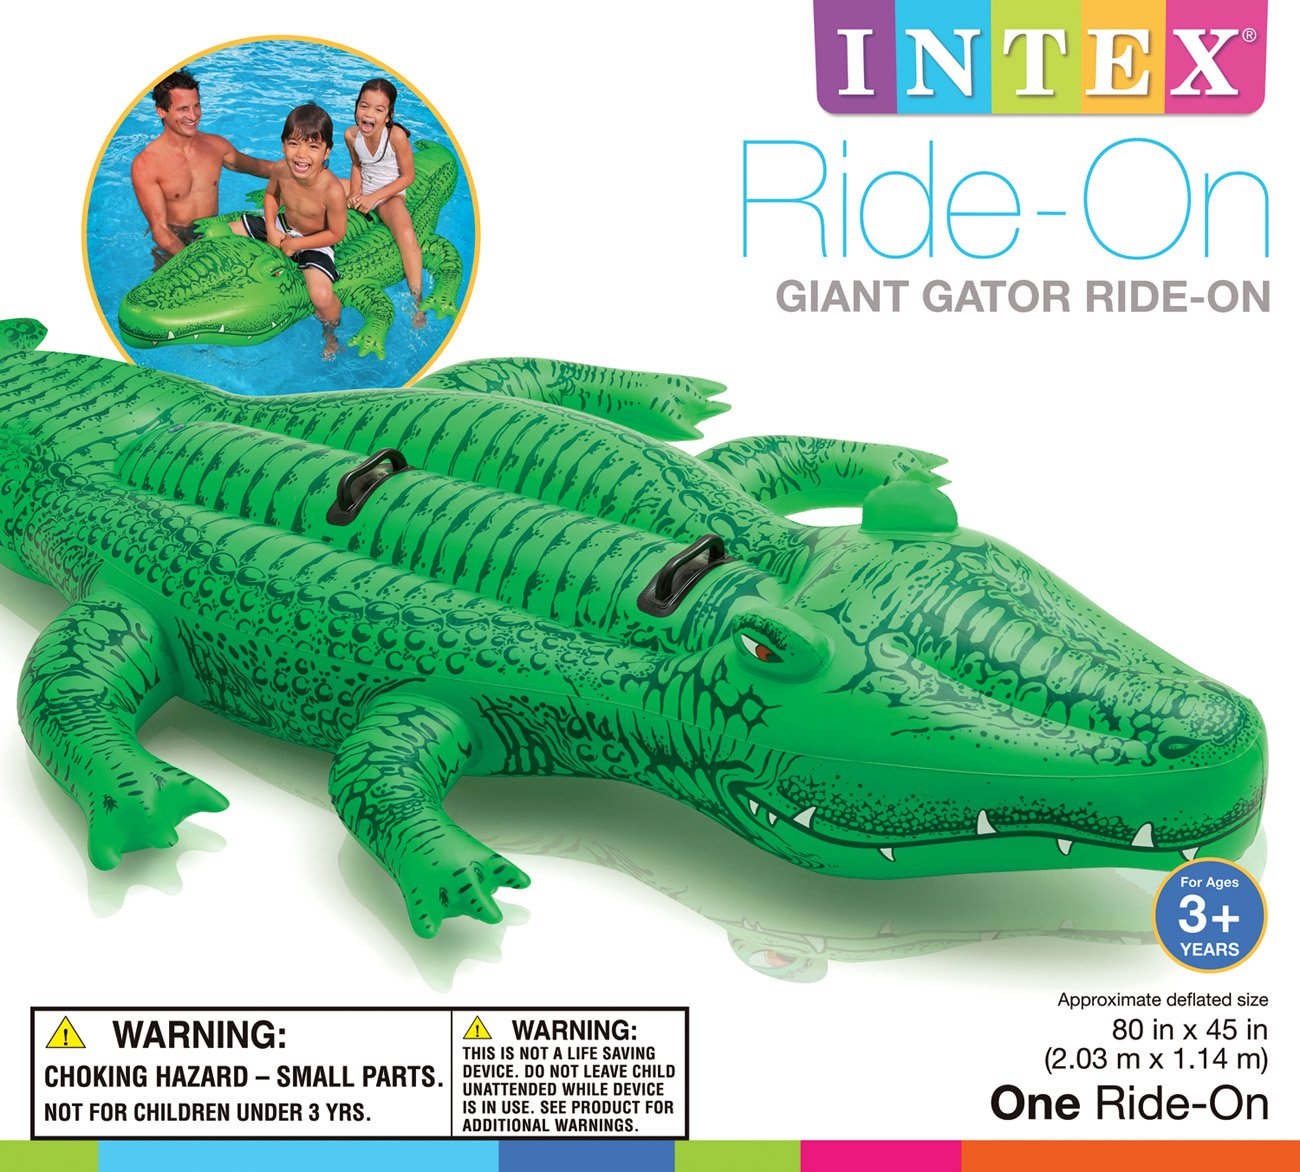 Intex Inflatable Giant Gator Ride On   Shop Pool Supplies At HEB